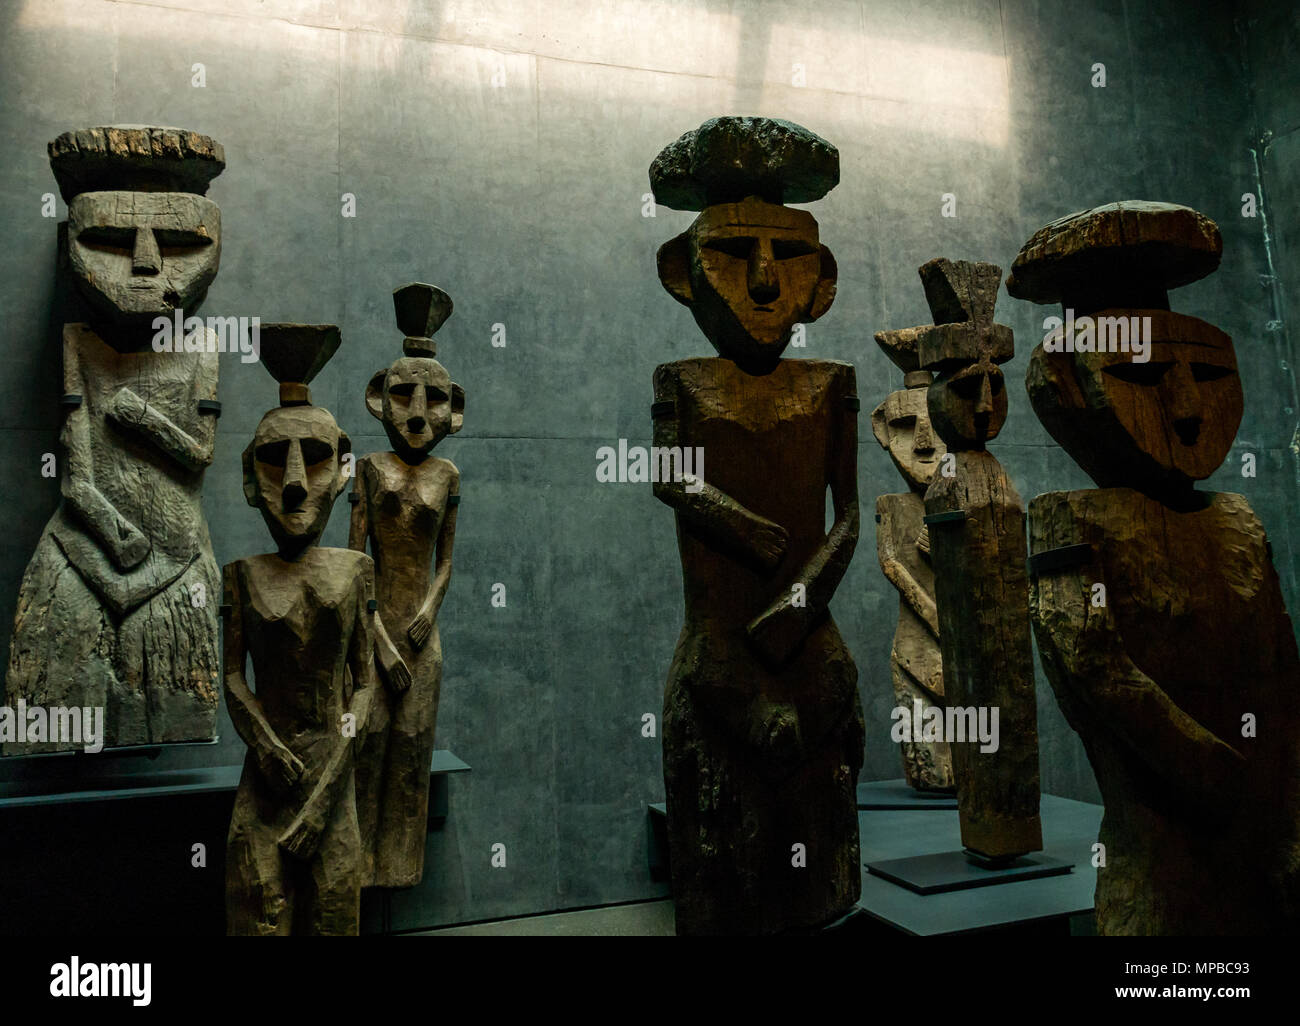 Exhibit in Museum of Pre-Columbian Art, Santiago, Chile. Wooden figures with top knots, called Chemamulles, found at Andean culture Mapuche cemeteries - Stock Image